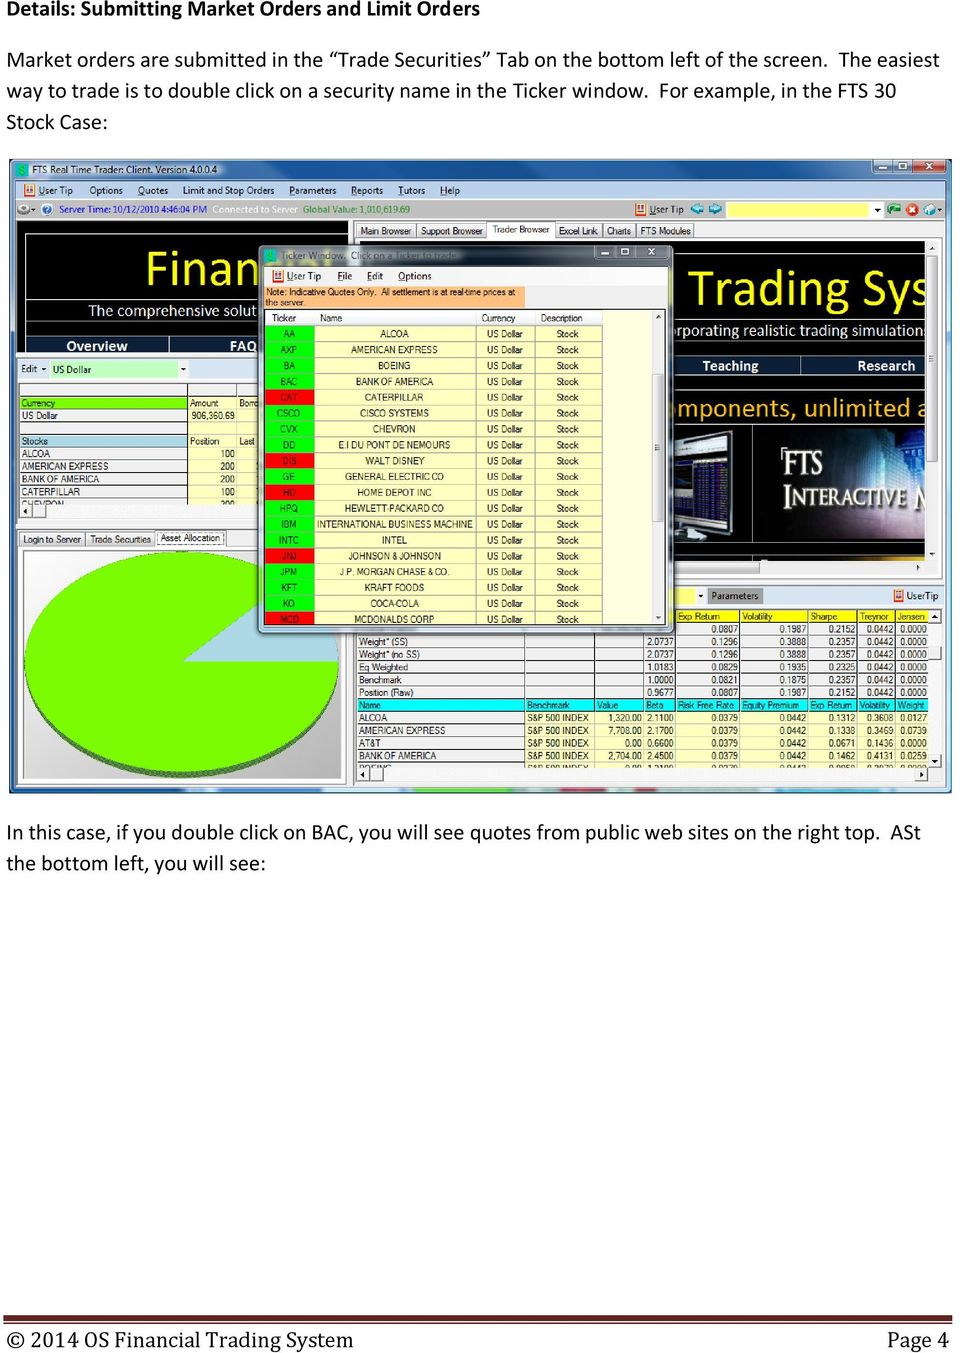 The easiest way to trade is to double click on a security name in the Ticker window.